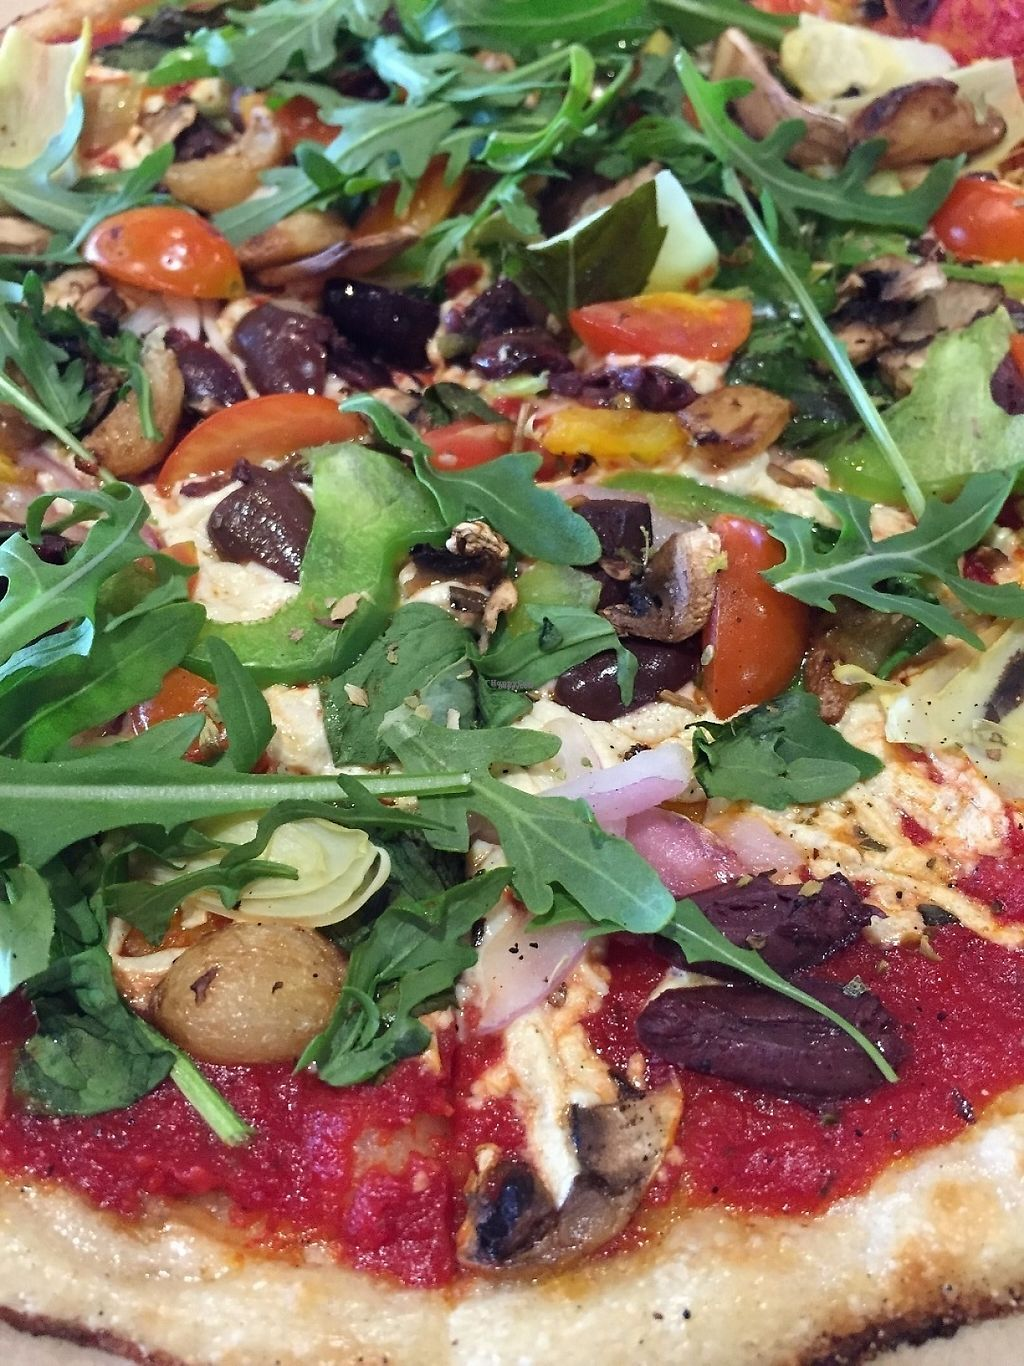 """Photo of Blaze Pizza  by <a href=""""/members/profile/SierraSarah"""">SierraSarah</a> <br/>Vegan pizza <br/> March 9, 2017  - <a href='/contact/abuse/image/88316/234568'>Report</a>"""